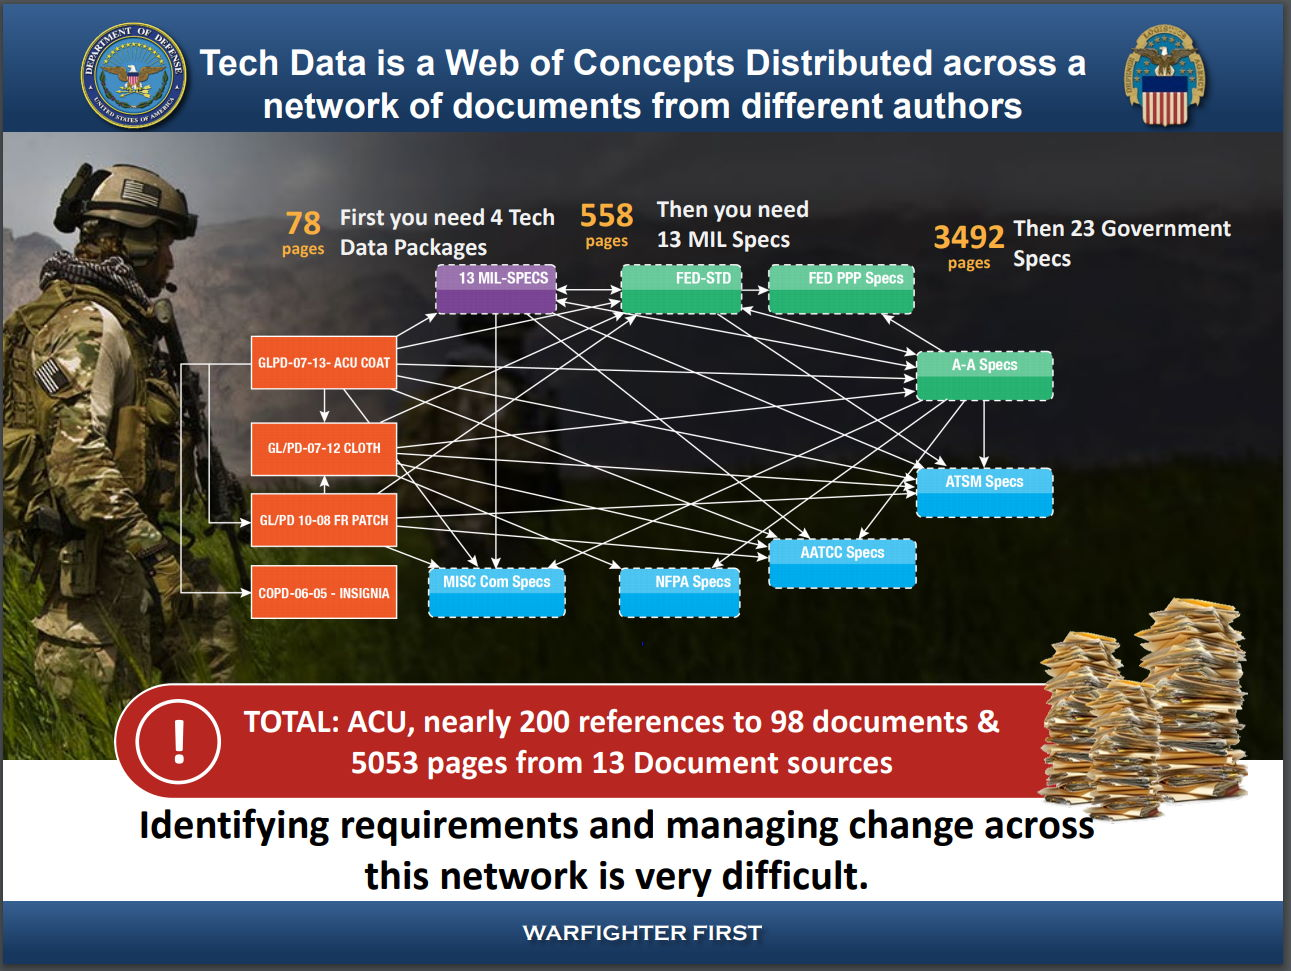 Tech Data is a Web of Concepts Distributed across a network of documents from different authors